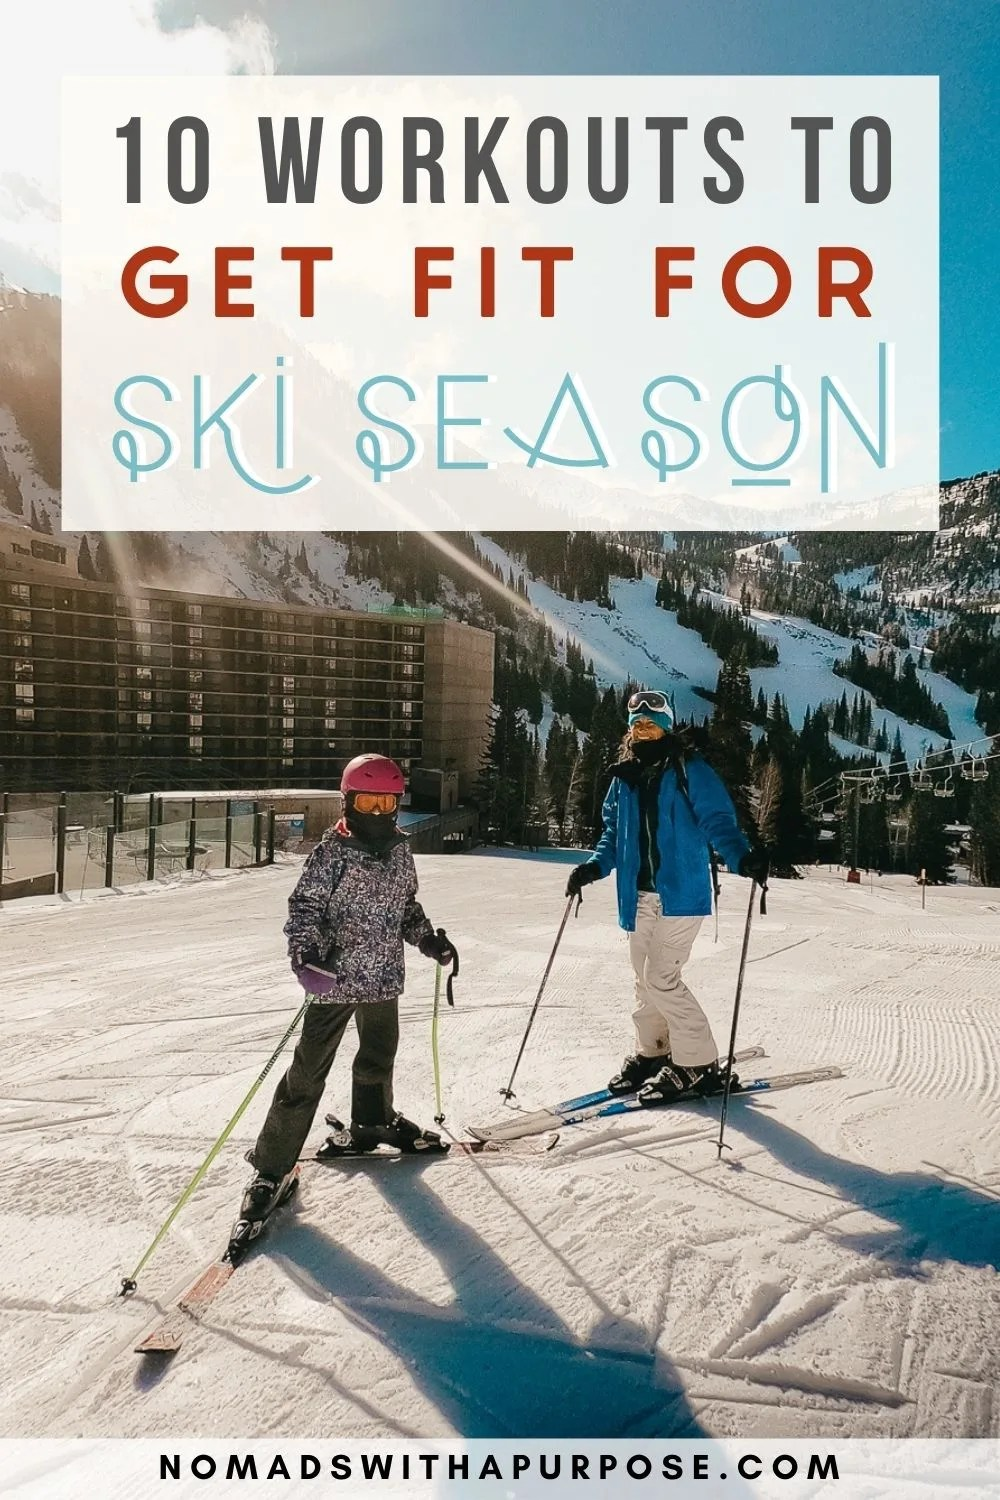 10 Workouts to Get Fit For Ski Season